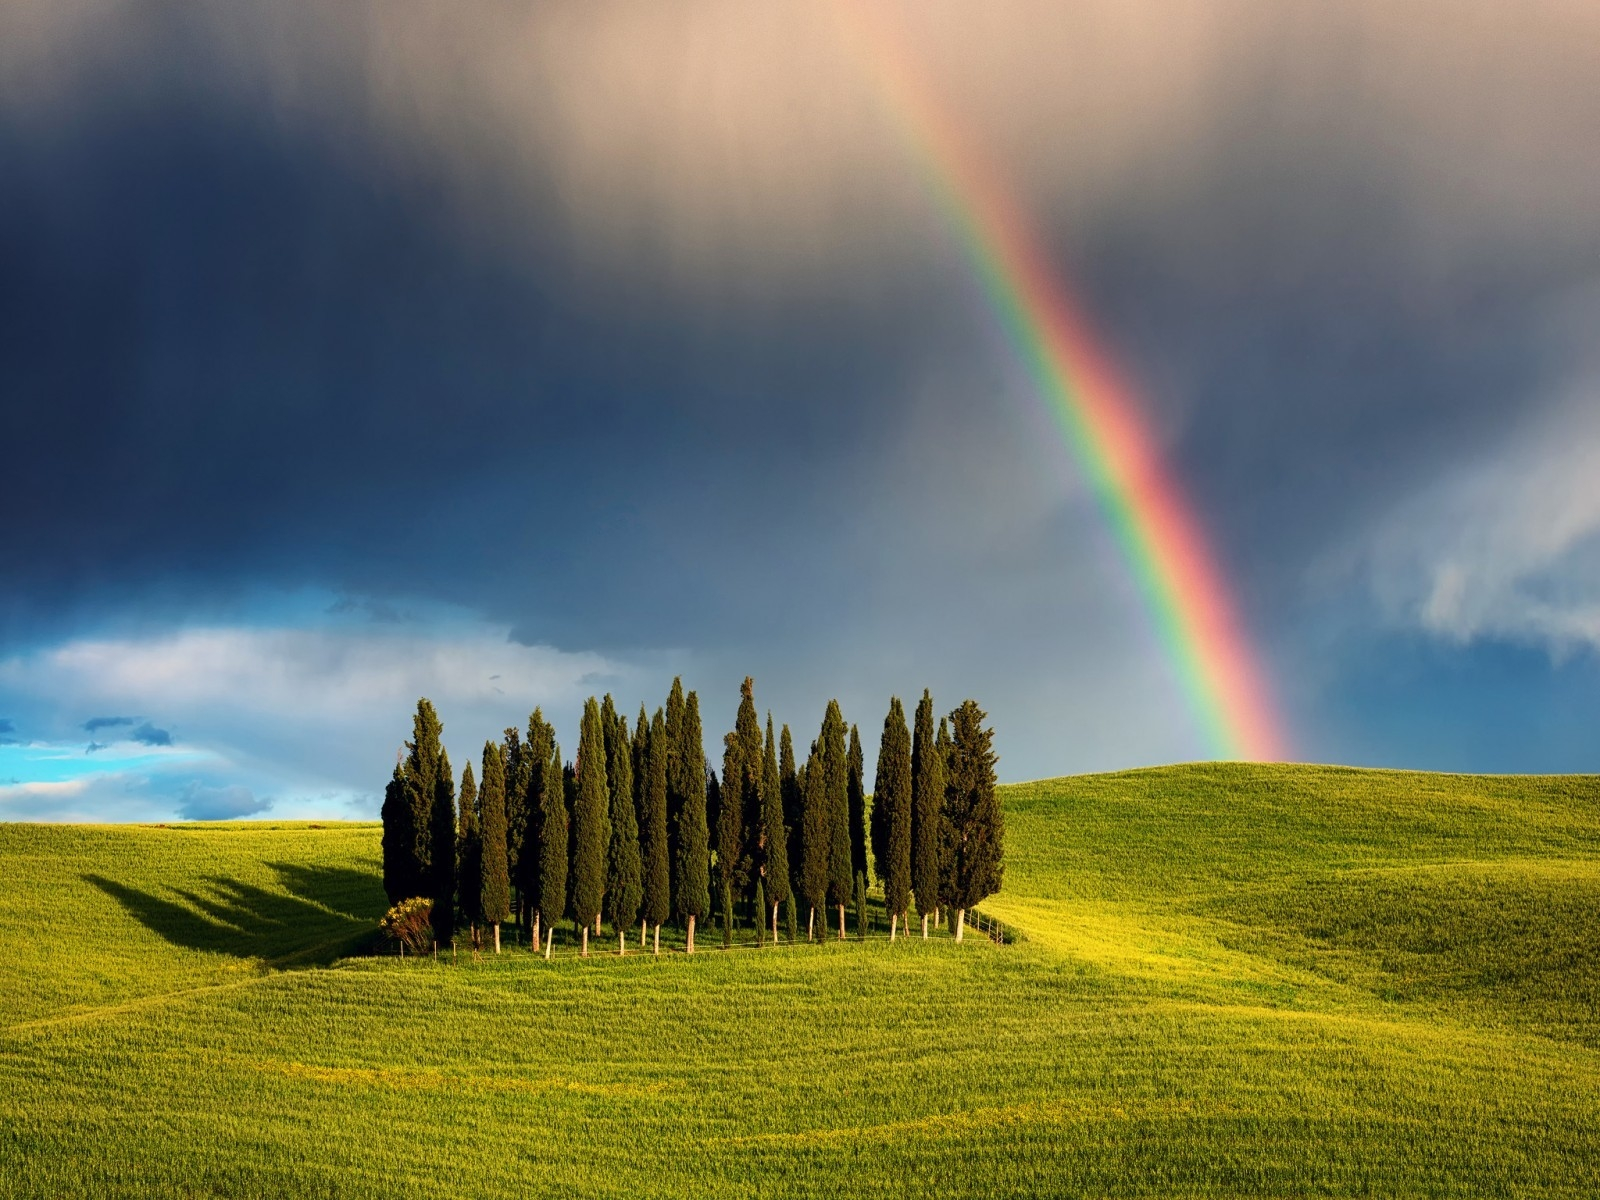 Rainbow in Tuscany for 1600 x 1200 resolution